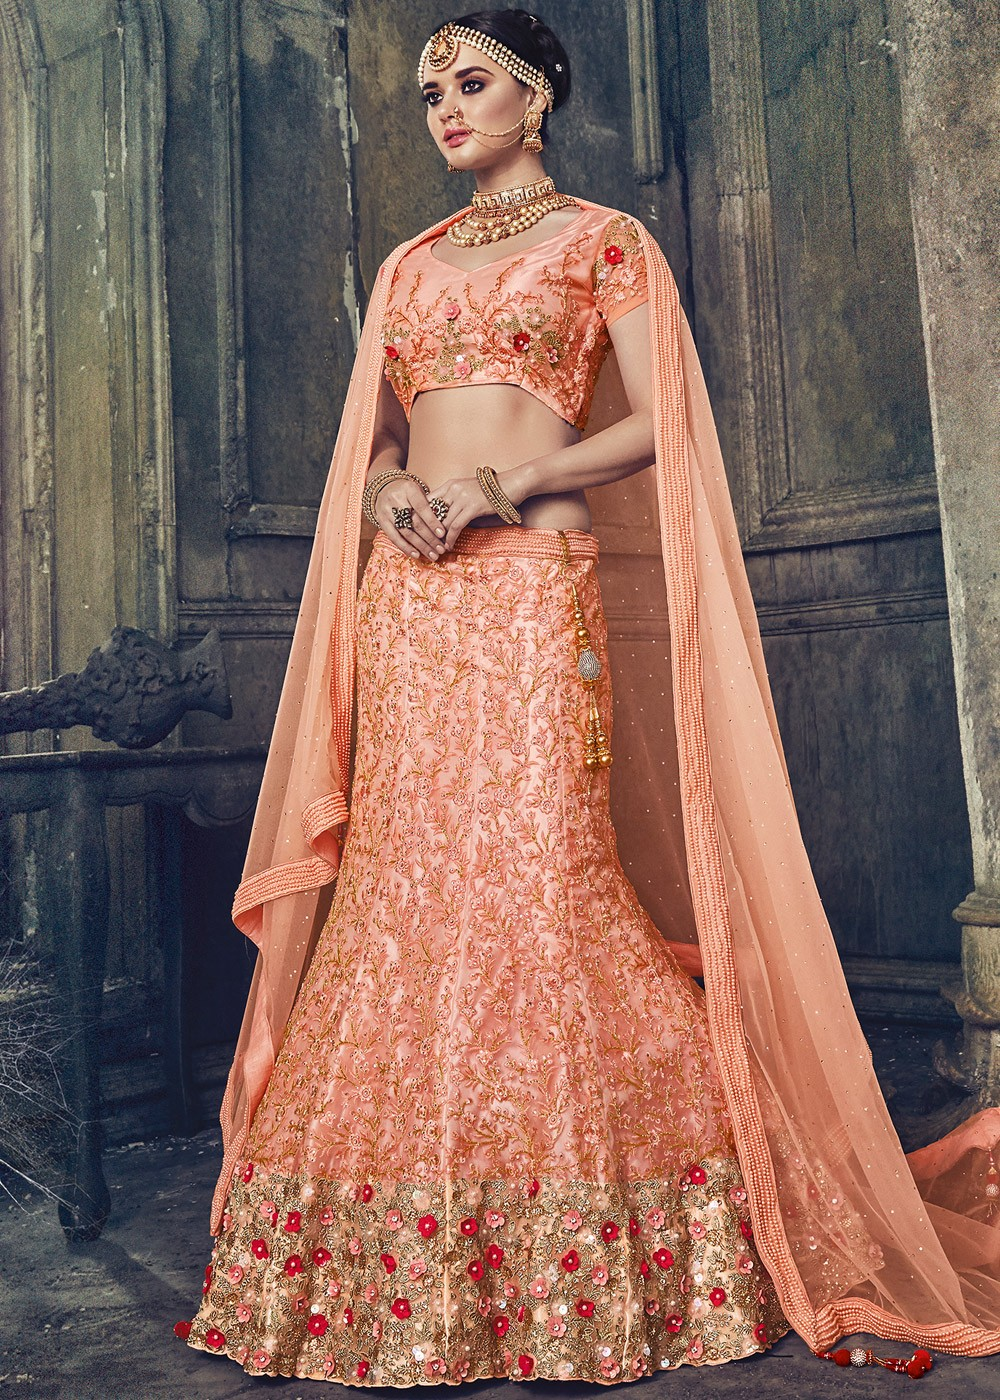 Peach Net Bridal Lehenga Choli With Dupatta Lehenga 1614lg04